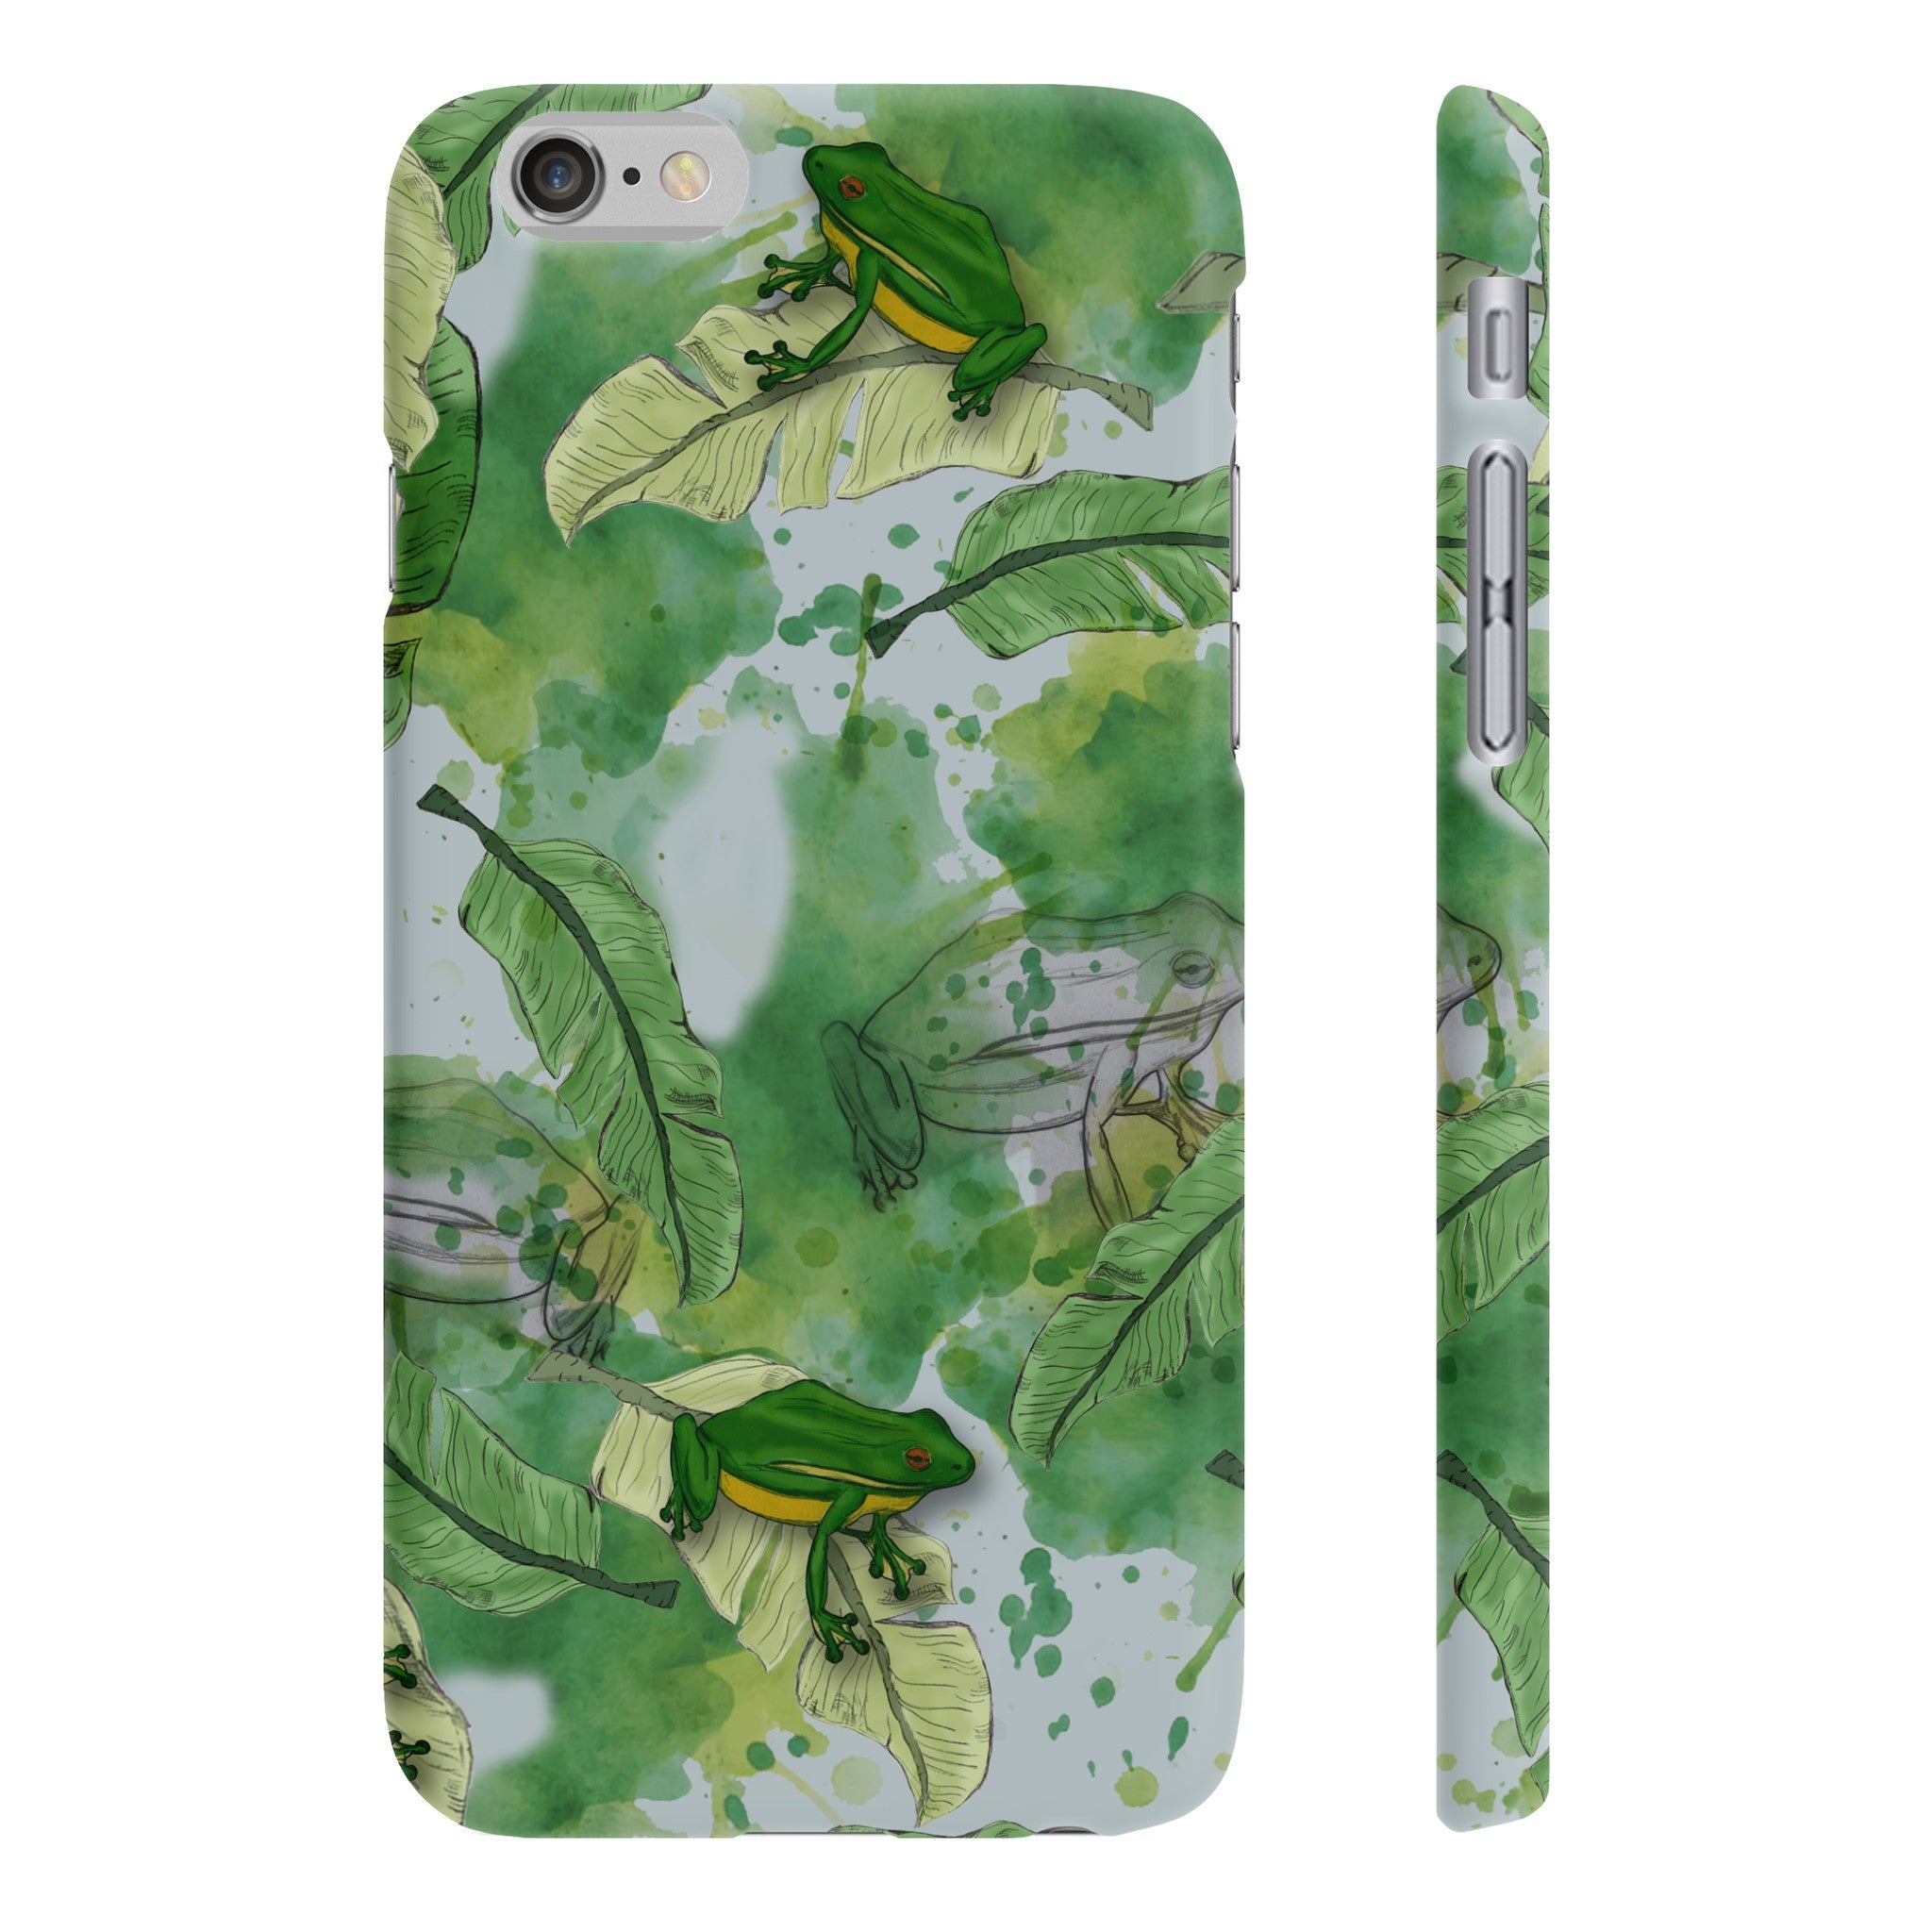 Rainforest frogs Iphone 6/6s - sleekitstore